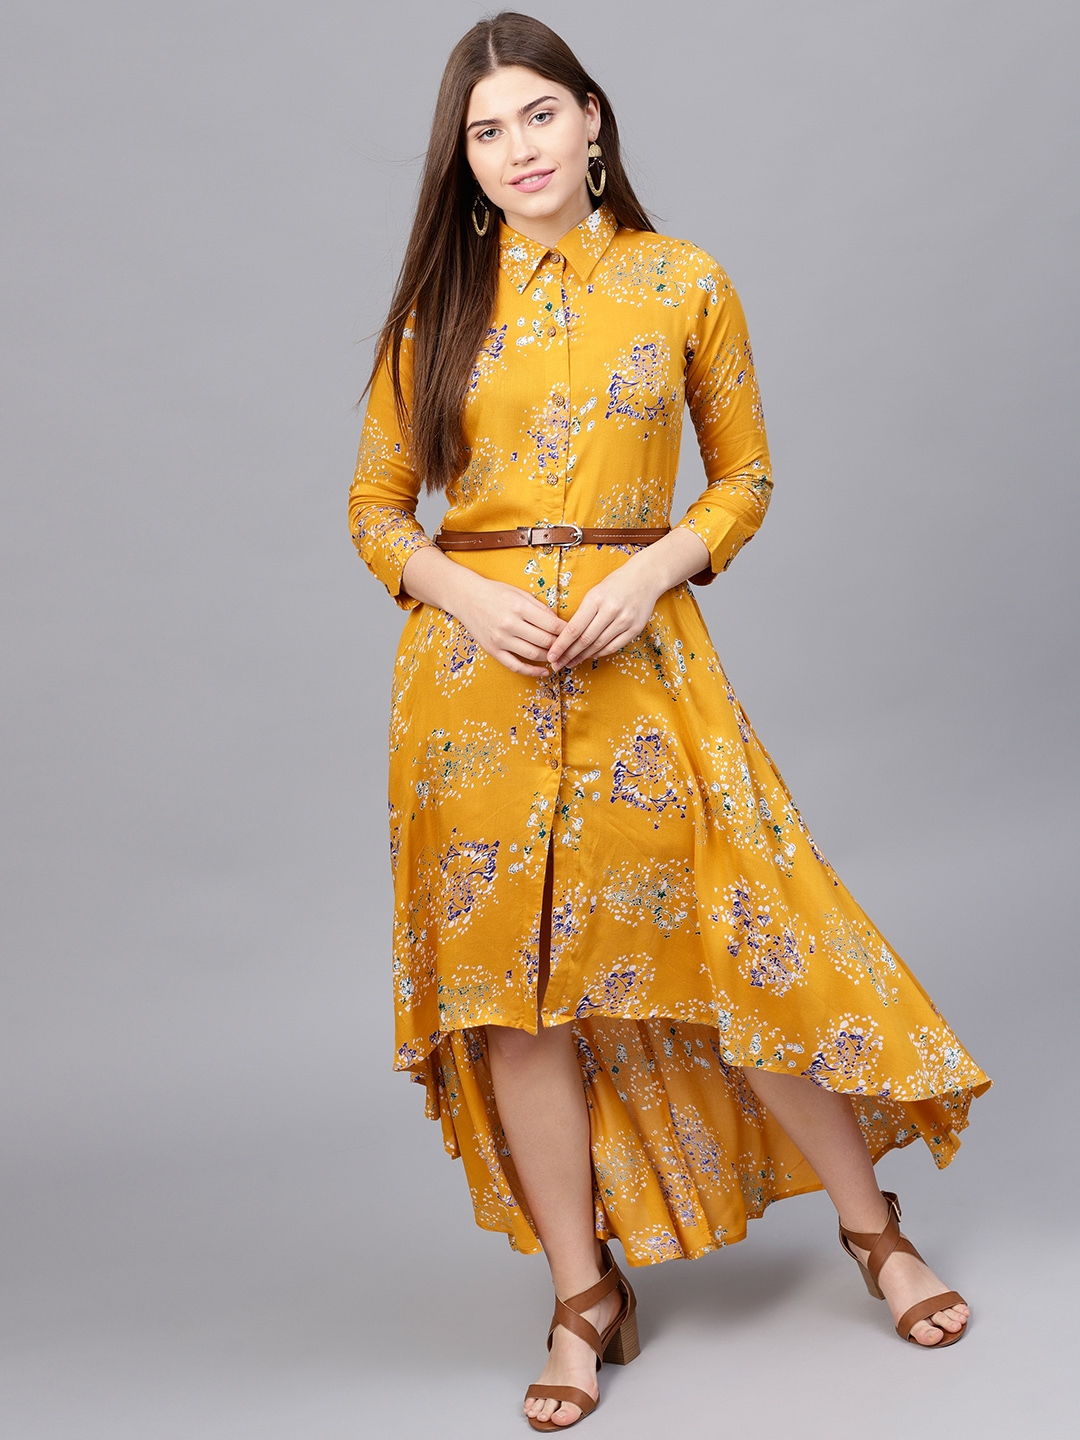 057cf21a7b Buy Athena Women Mustard Yellow Printed Maxi Dress - Dresses for ...